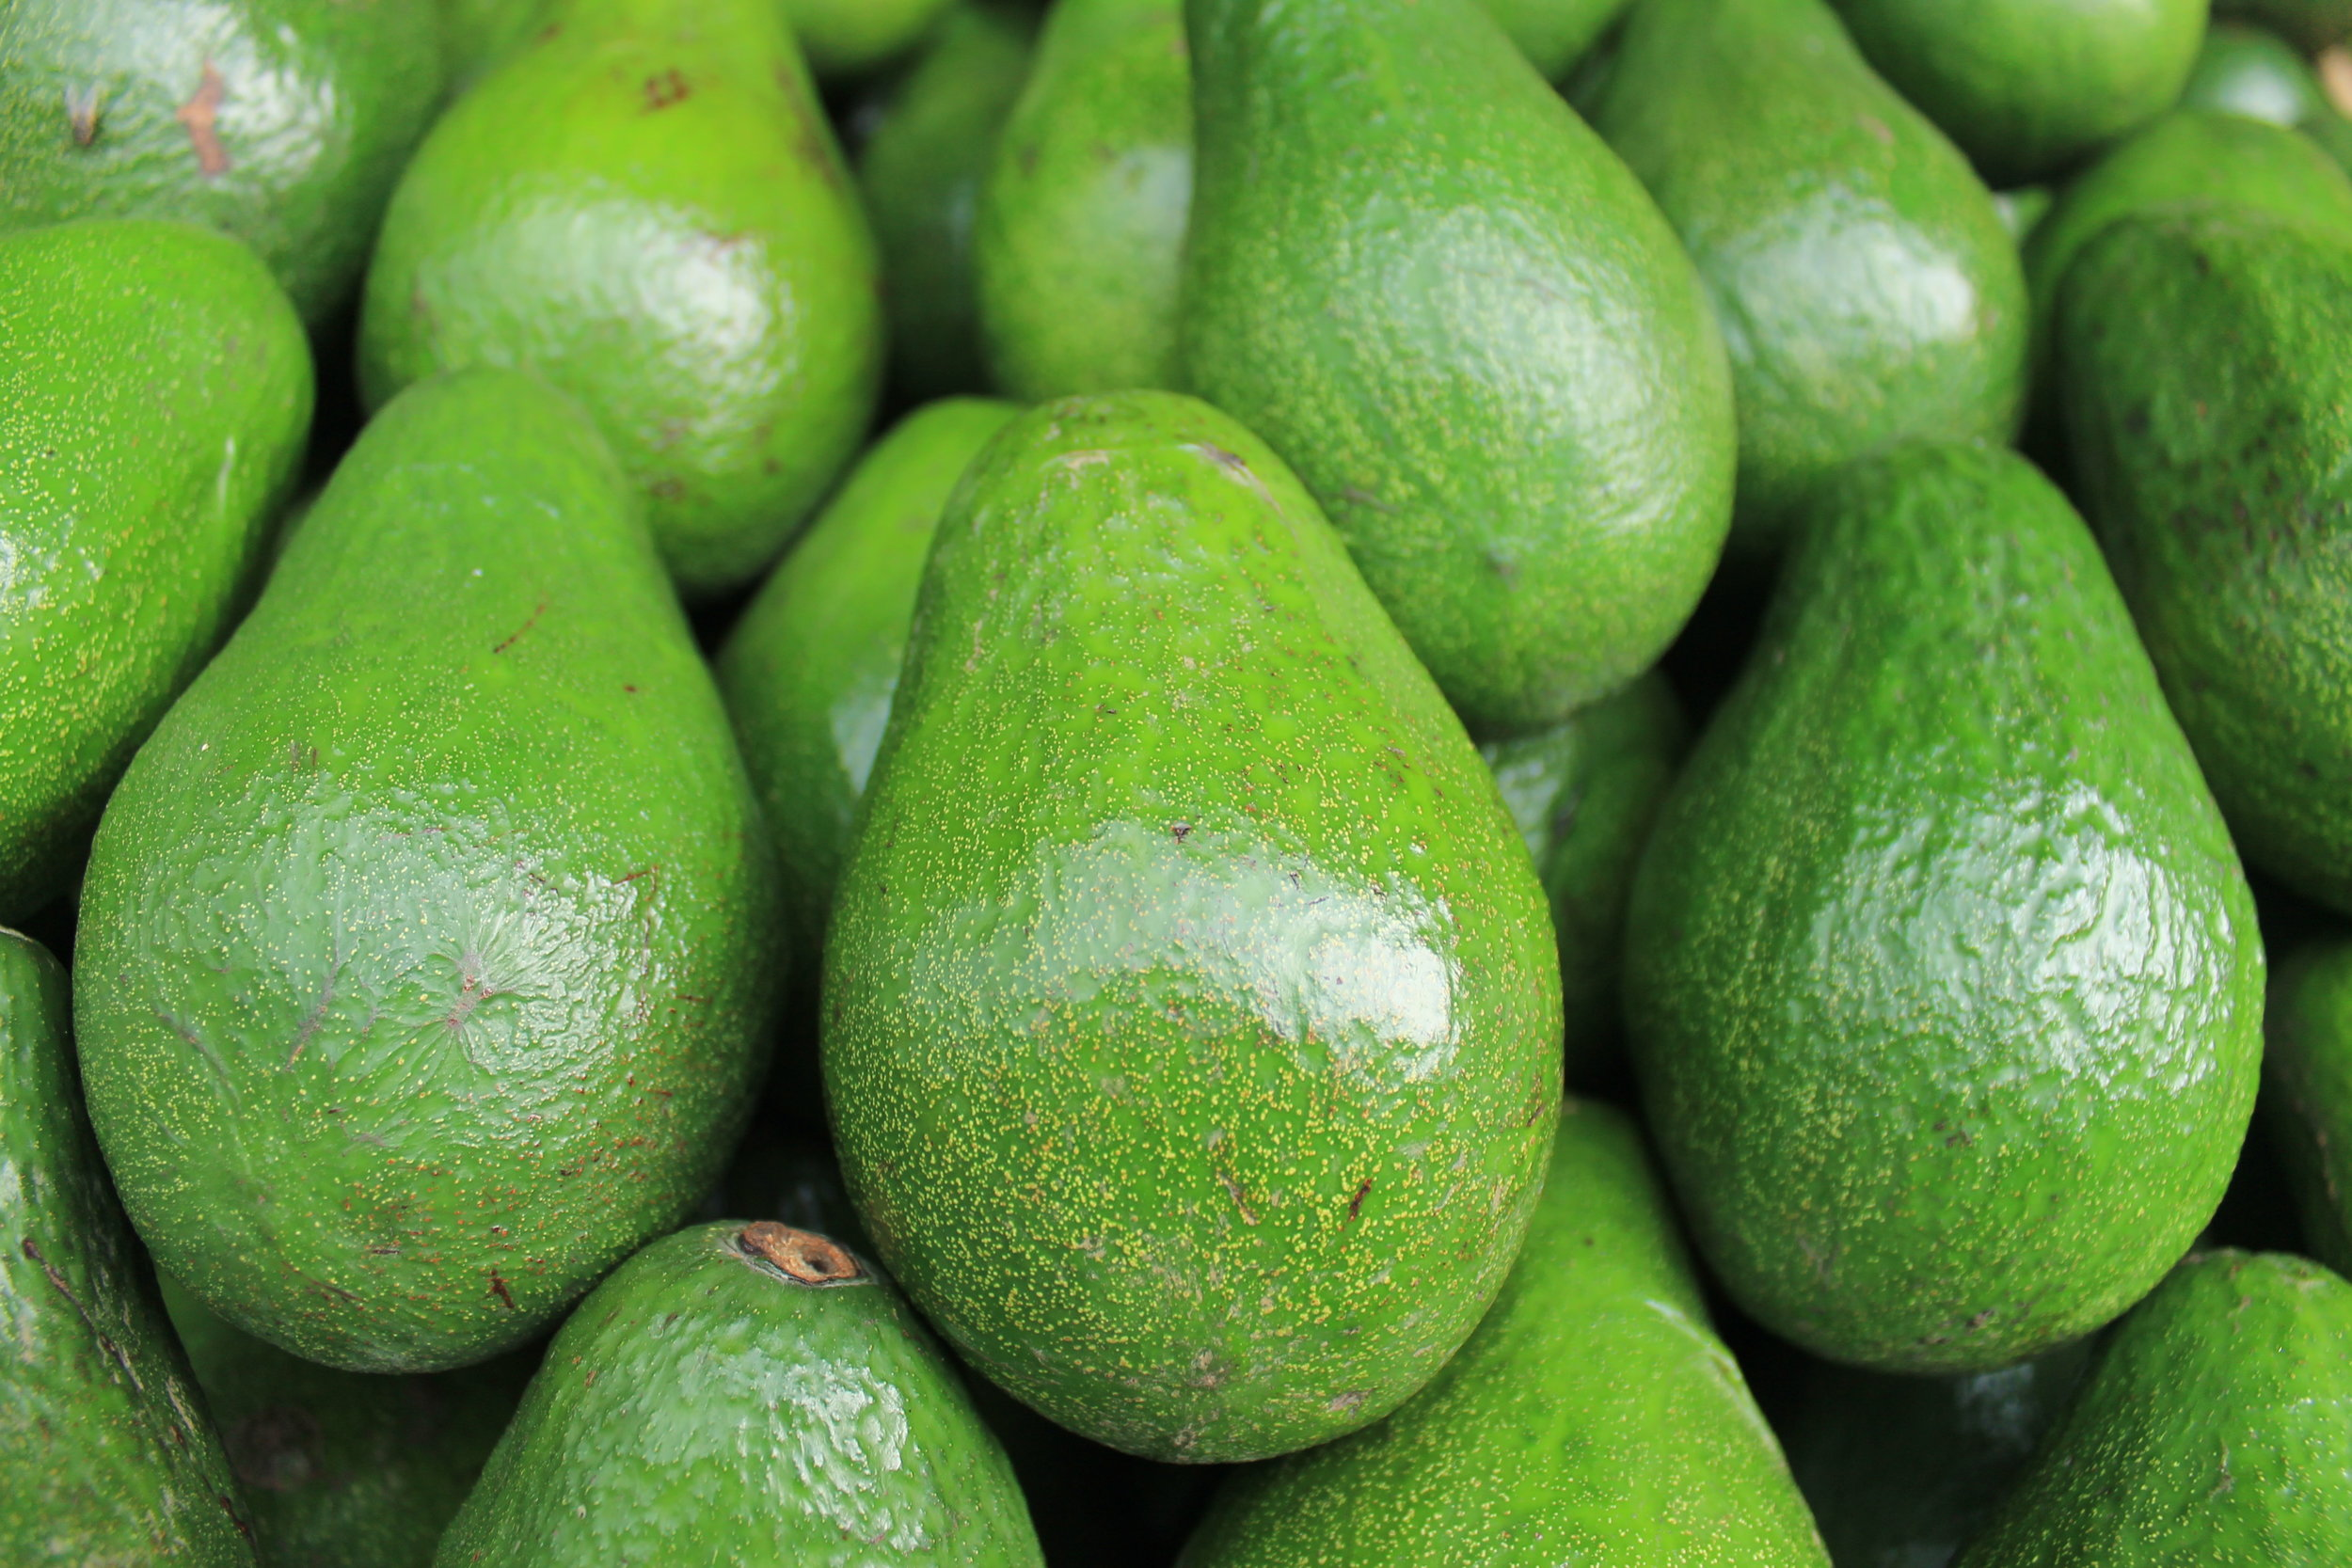 avocados - Fewer than 1 percent of conventional avocados tested positive for pesticides.Only one pesticide was found on any of the 360 avocados sampled.